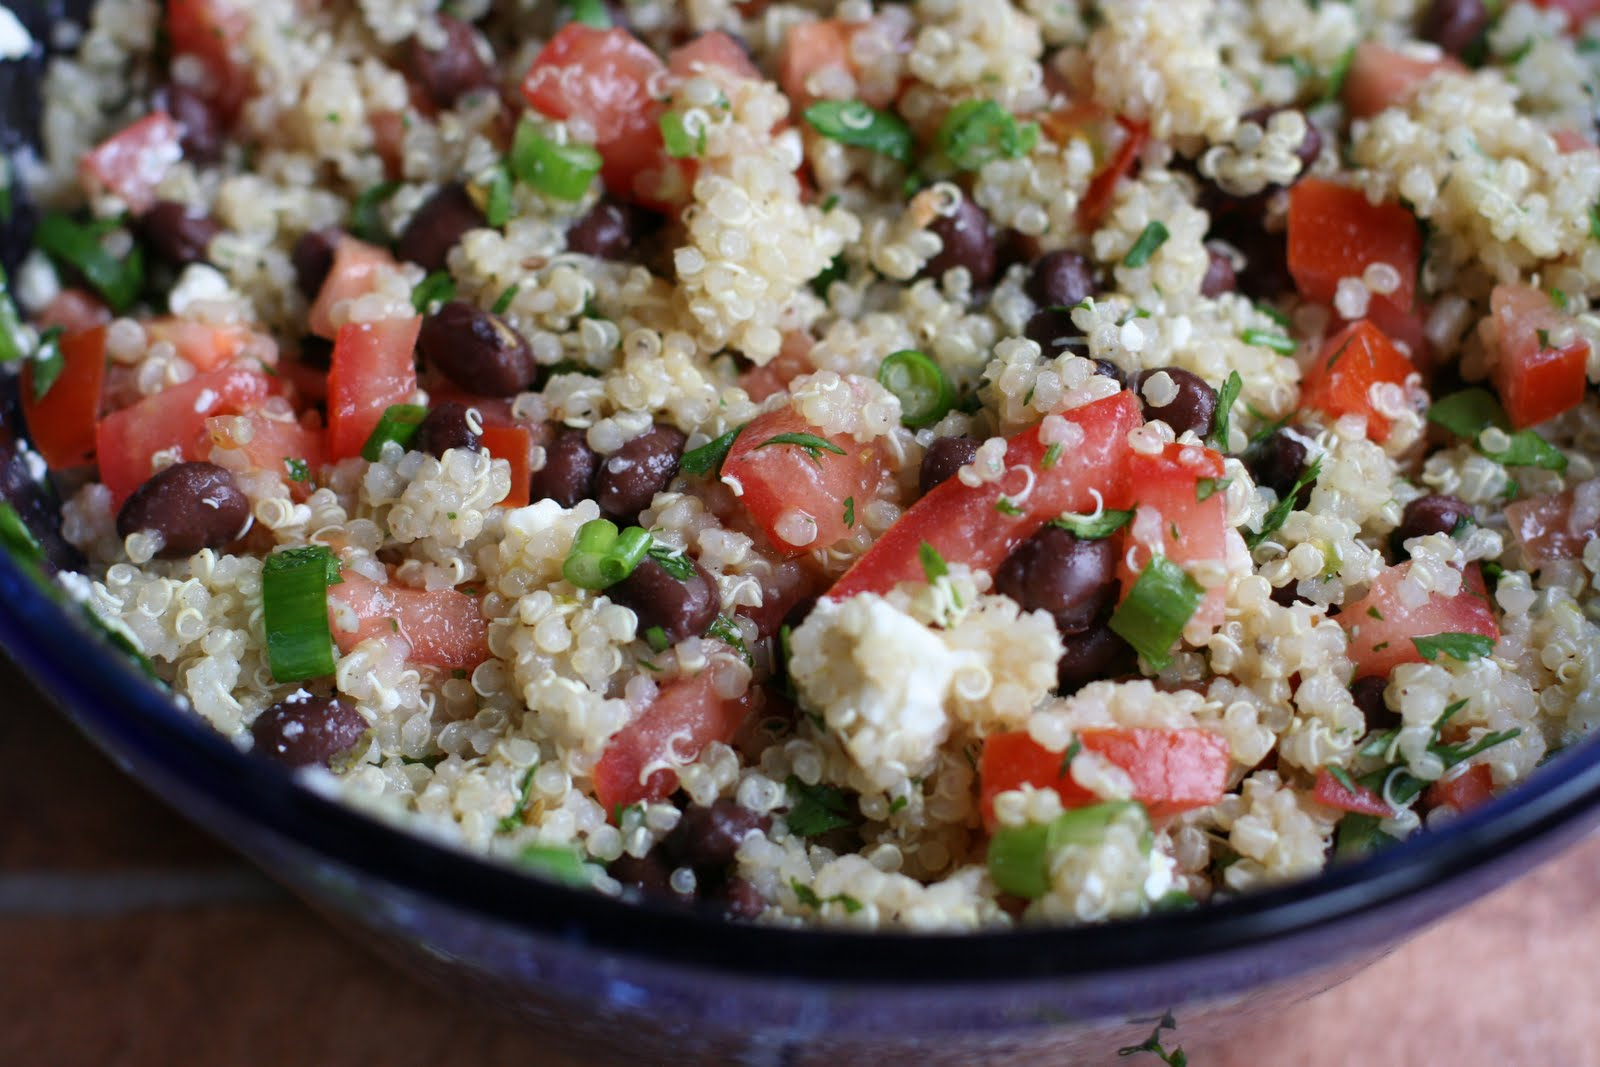 Crumb City: Quinoa Salad with Black Beans and Tomatoes